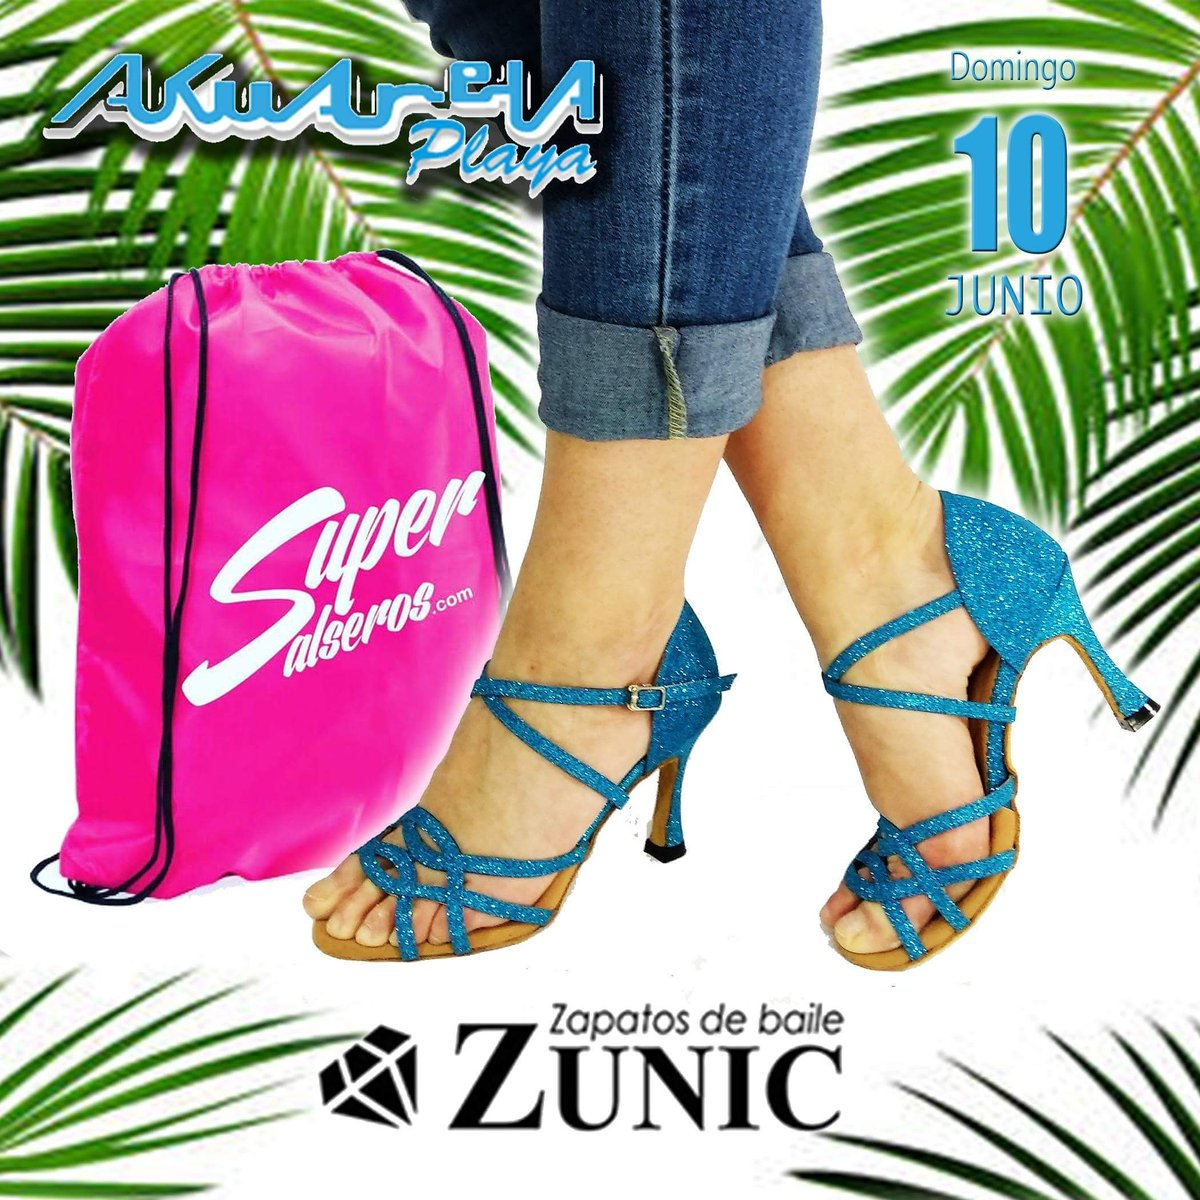 On Baile Zunic De Twitter Zapatos wP0nk8O